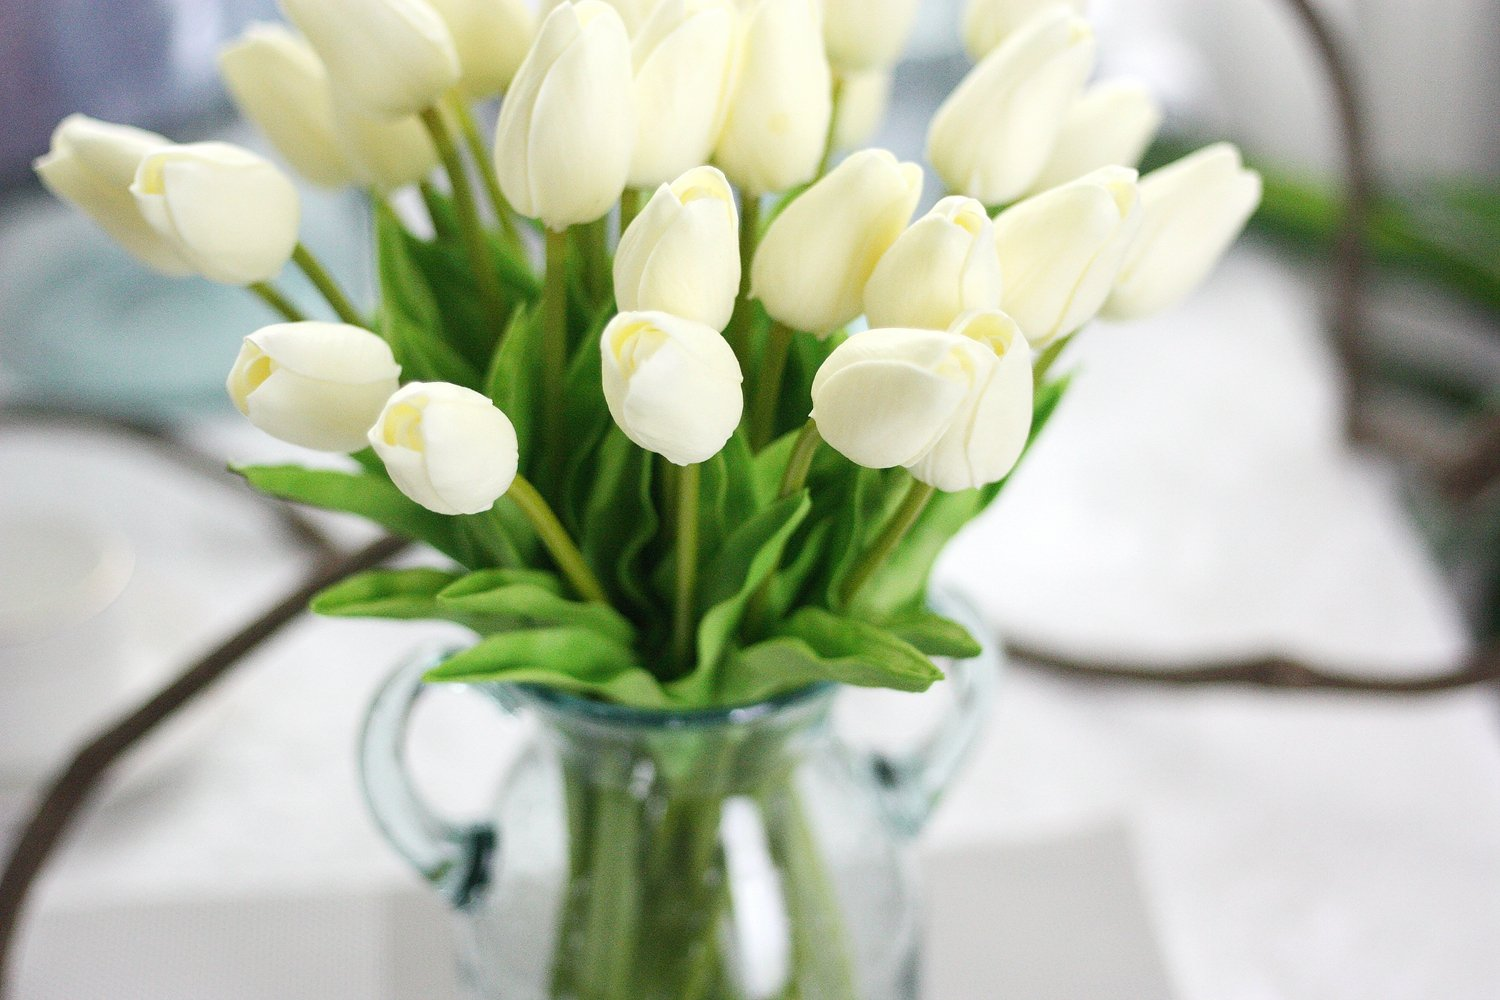 SHSYCER-20pcs-Tulip-Flower-Home-Garden-Hotel-Party-Event-Christmas-Wedding-Gift-Decoration-Artificial-Flowers-Nearly-Natural